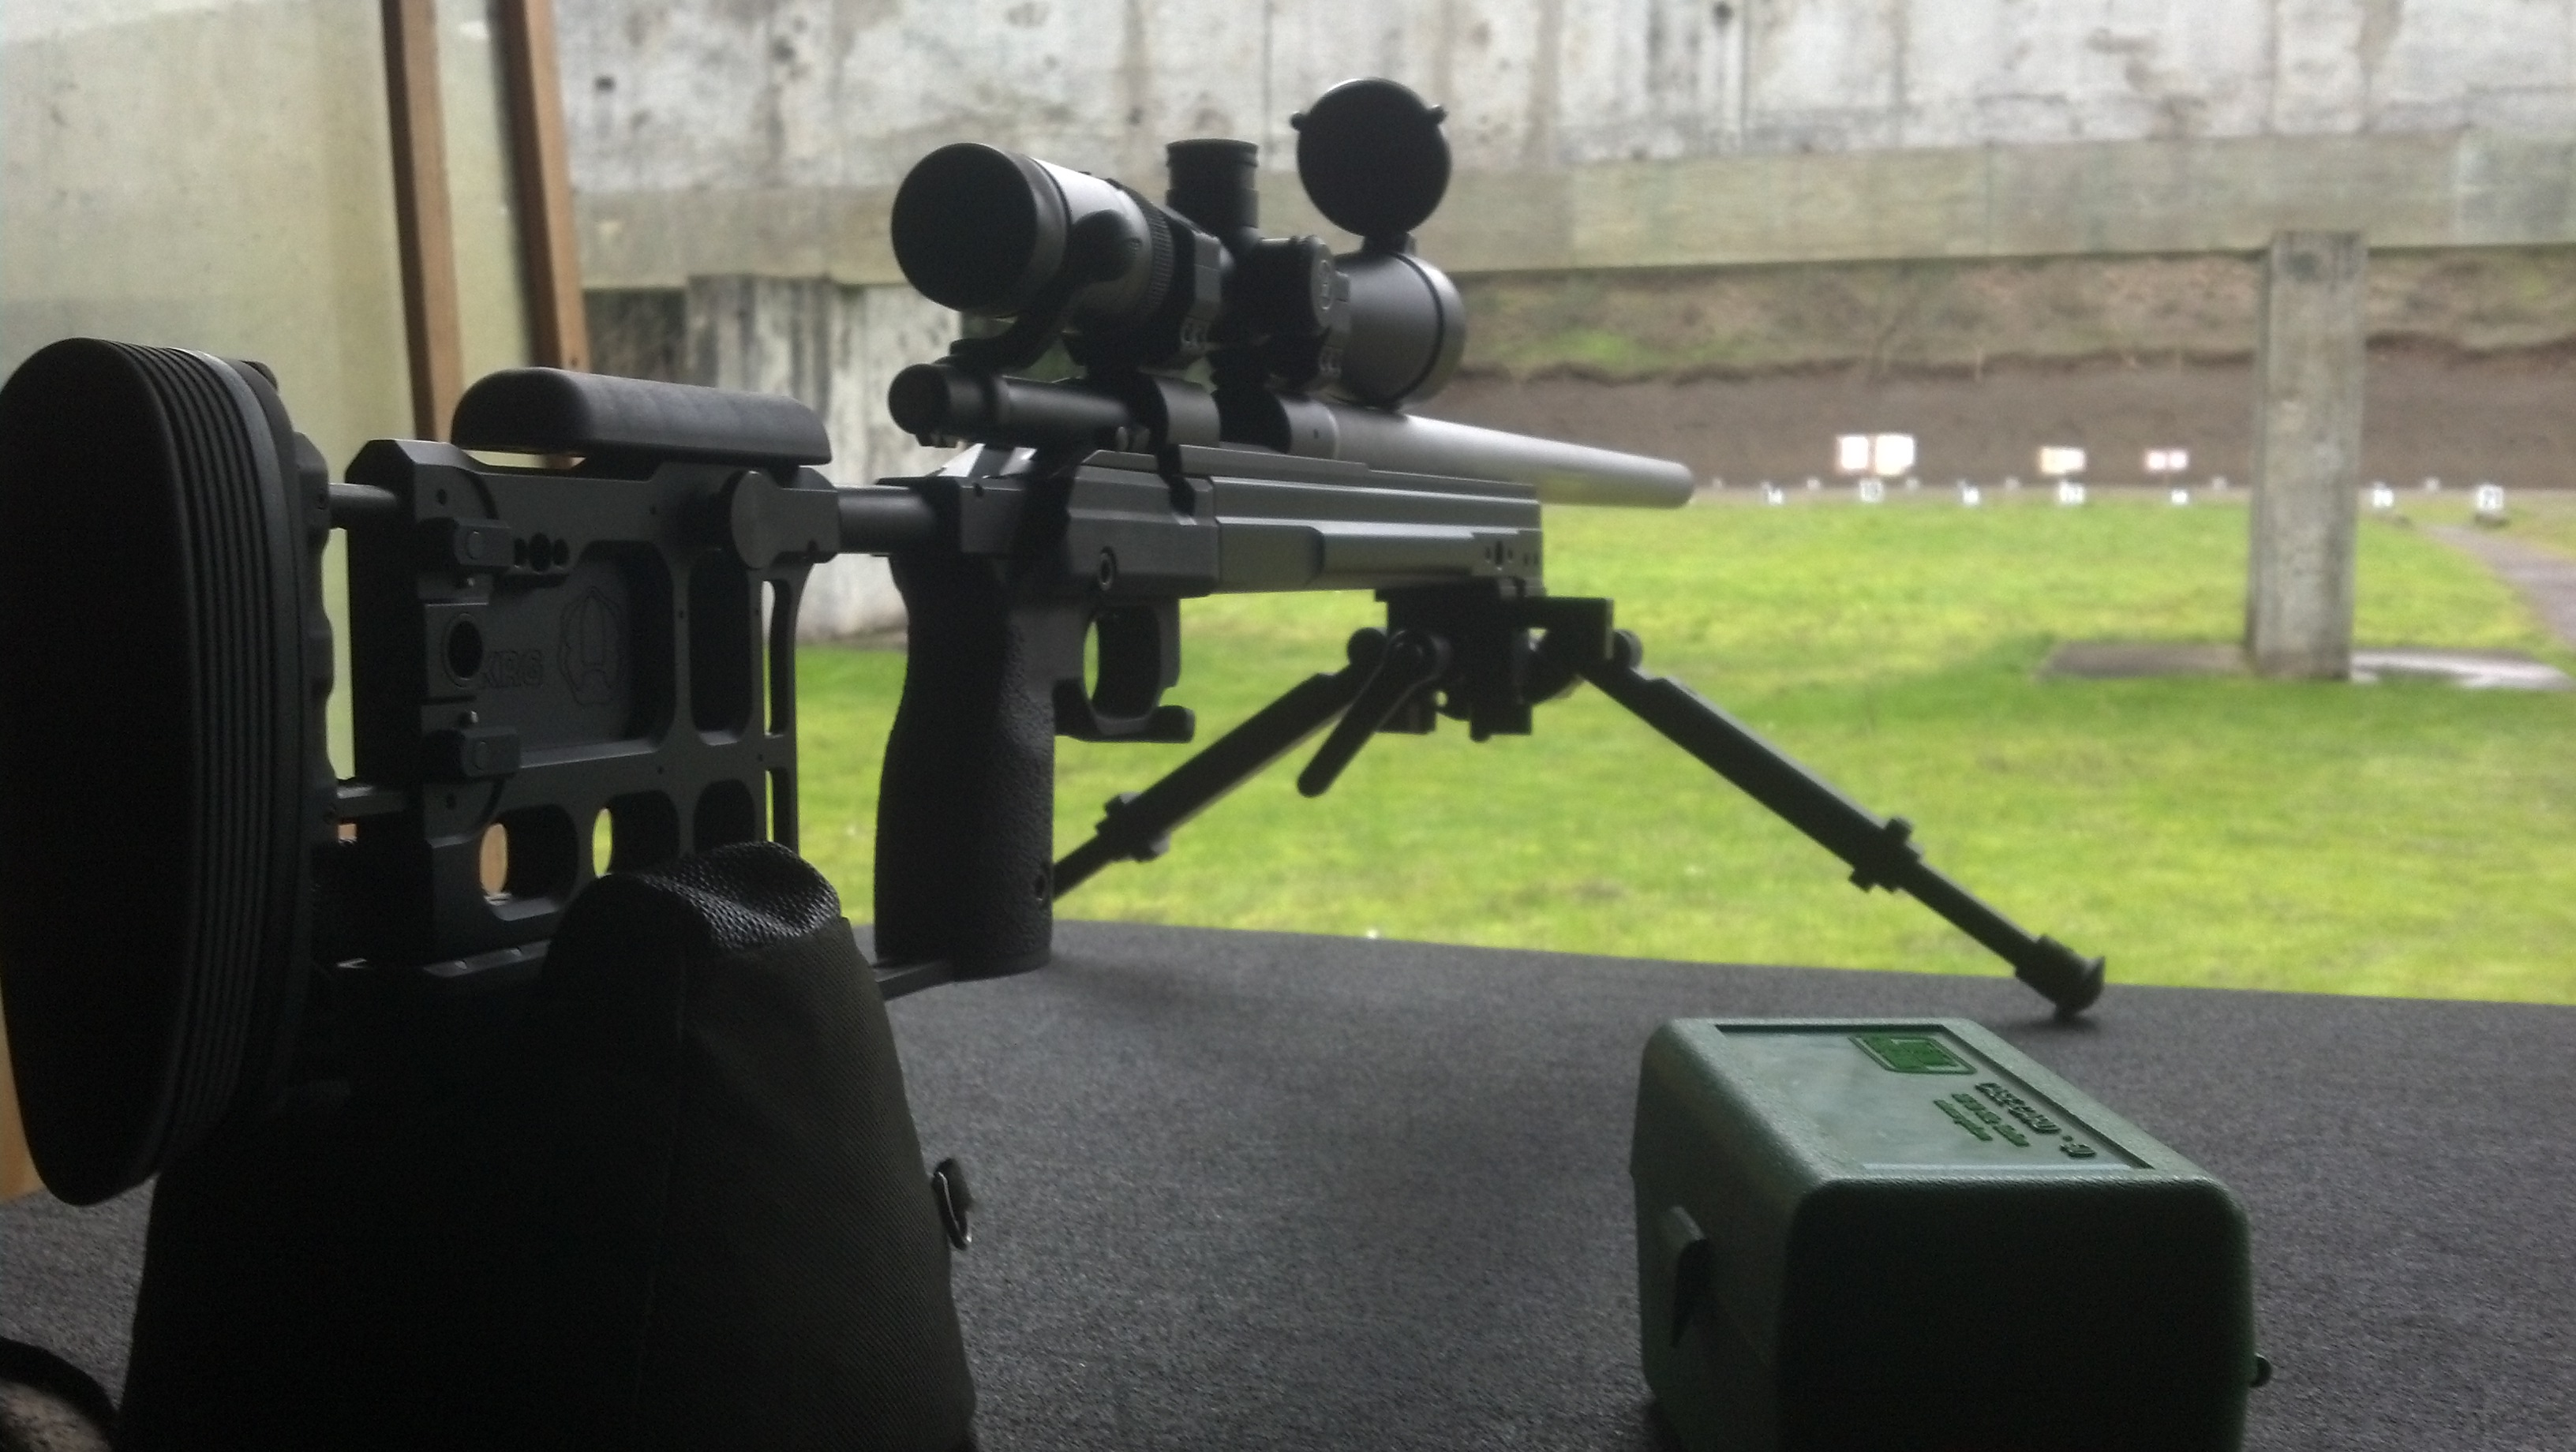 Rough Rider in 6.5 Creedmoor